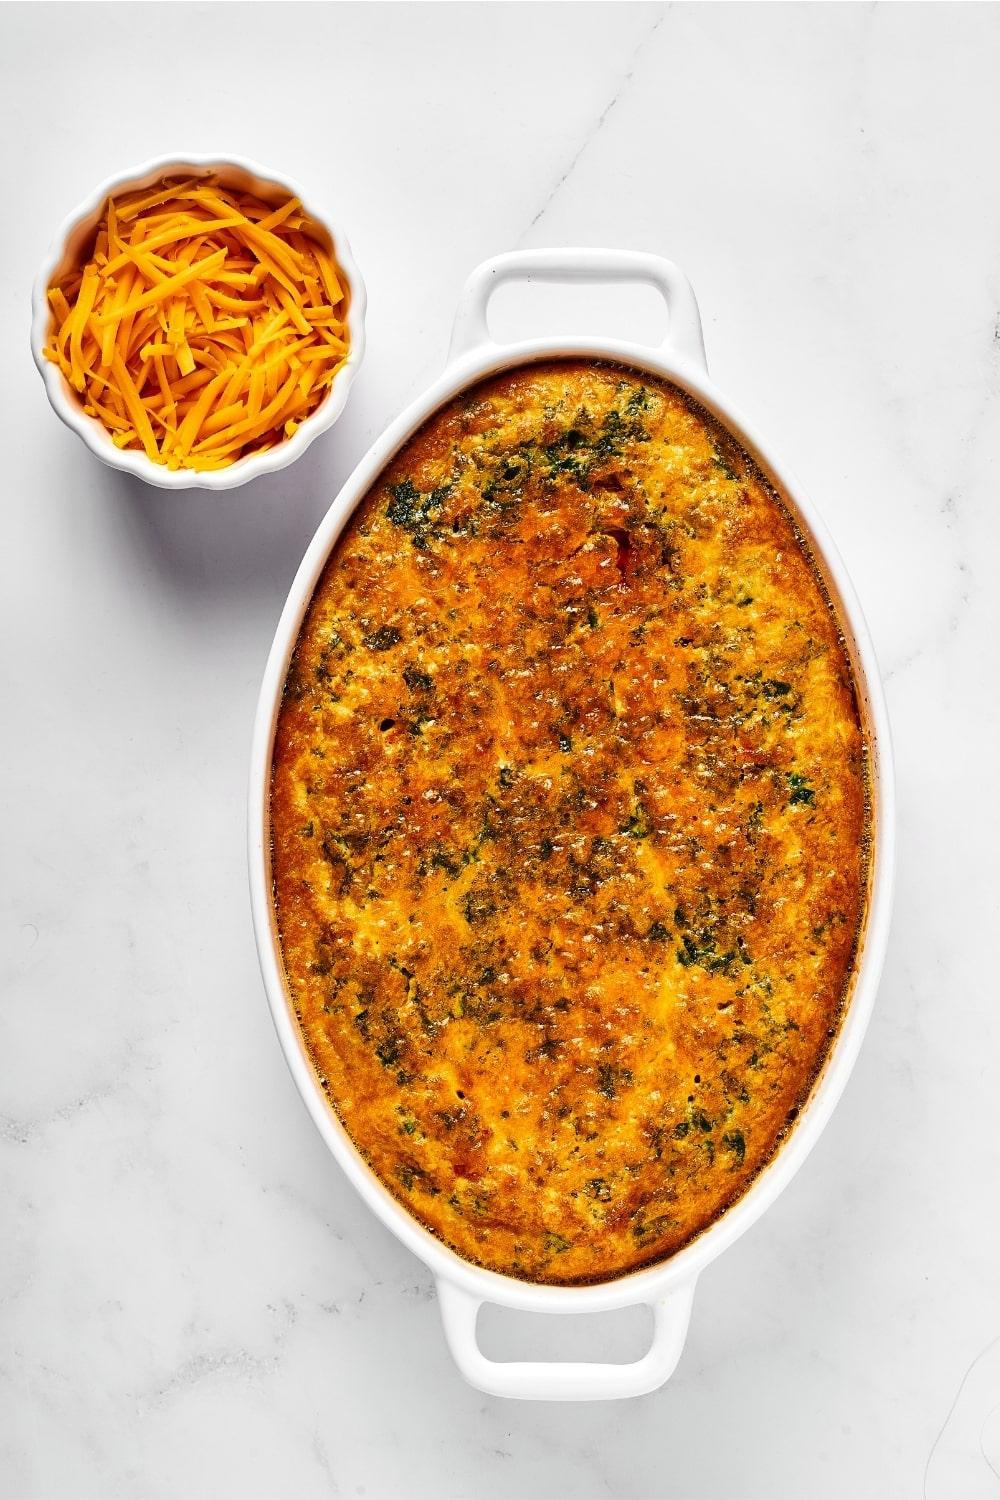 A breakfast casserole in a white casserole dish. At the back left of the dish is a small white bowl with shredded cheddar cheese in it.